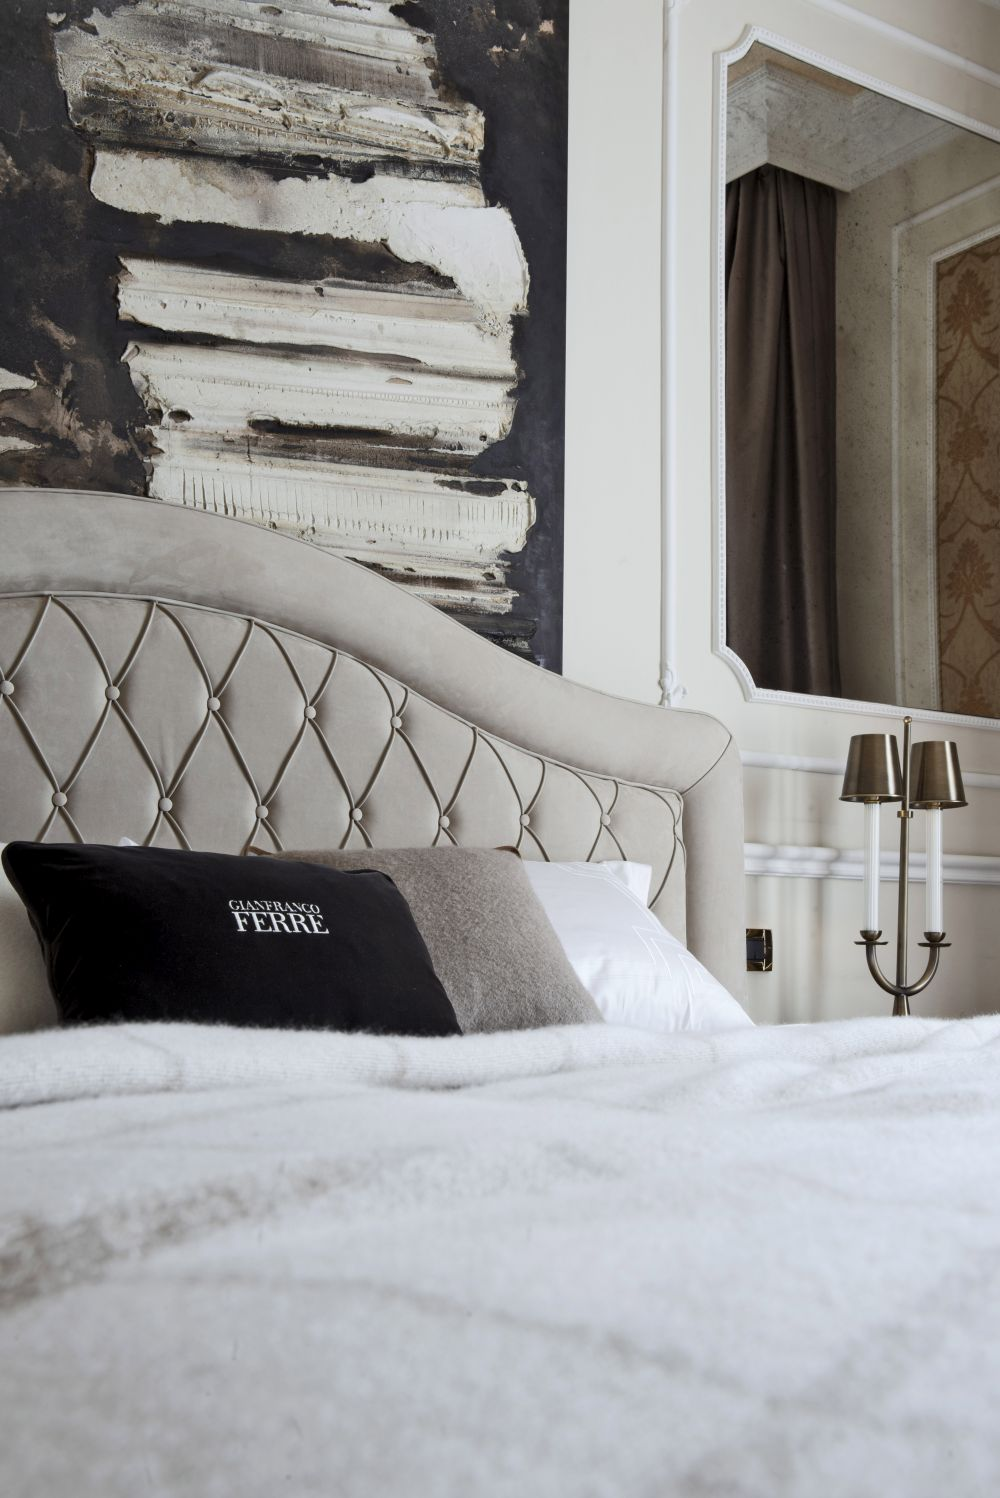 The Ferre brand label can be seen on the pillows.